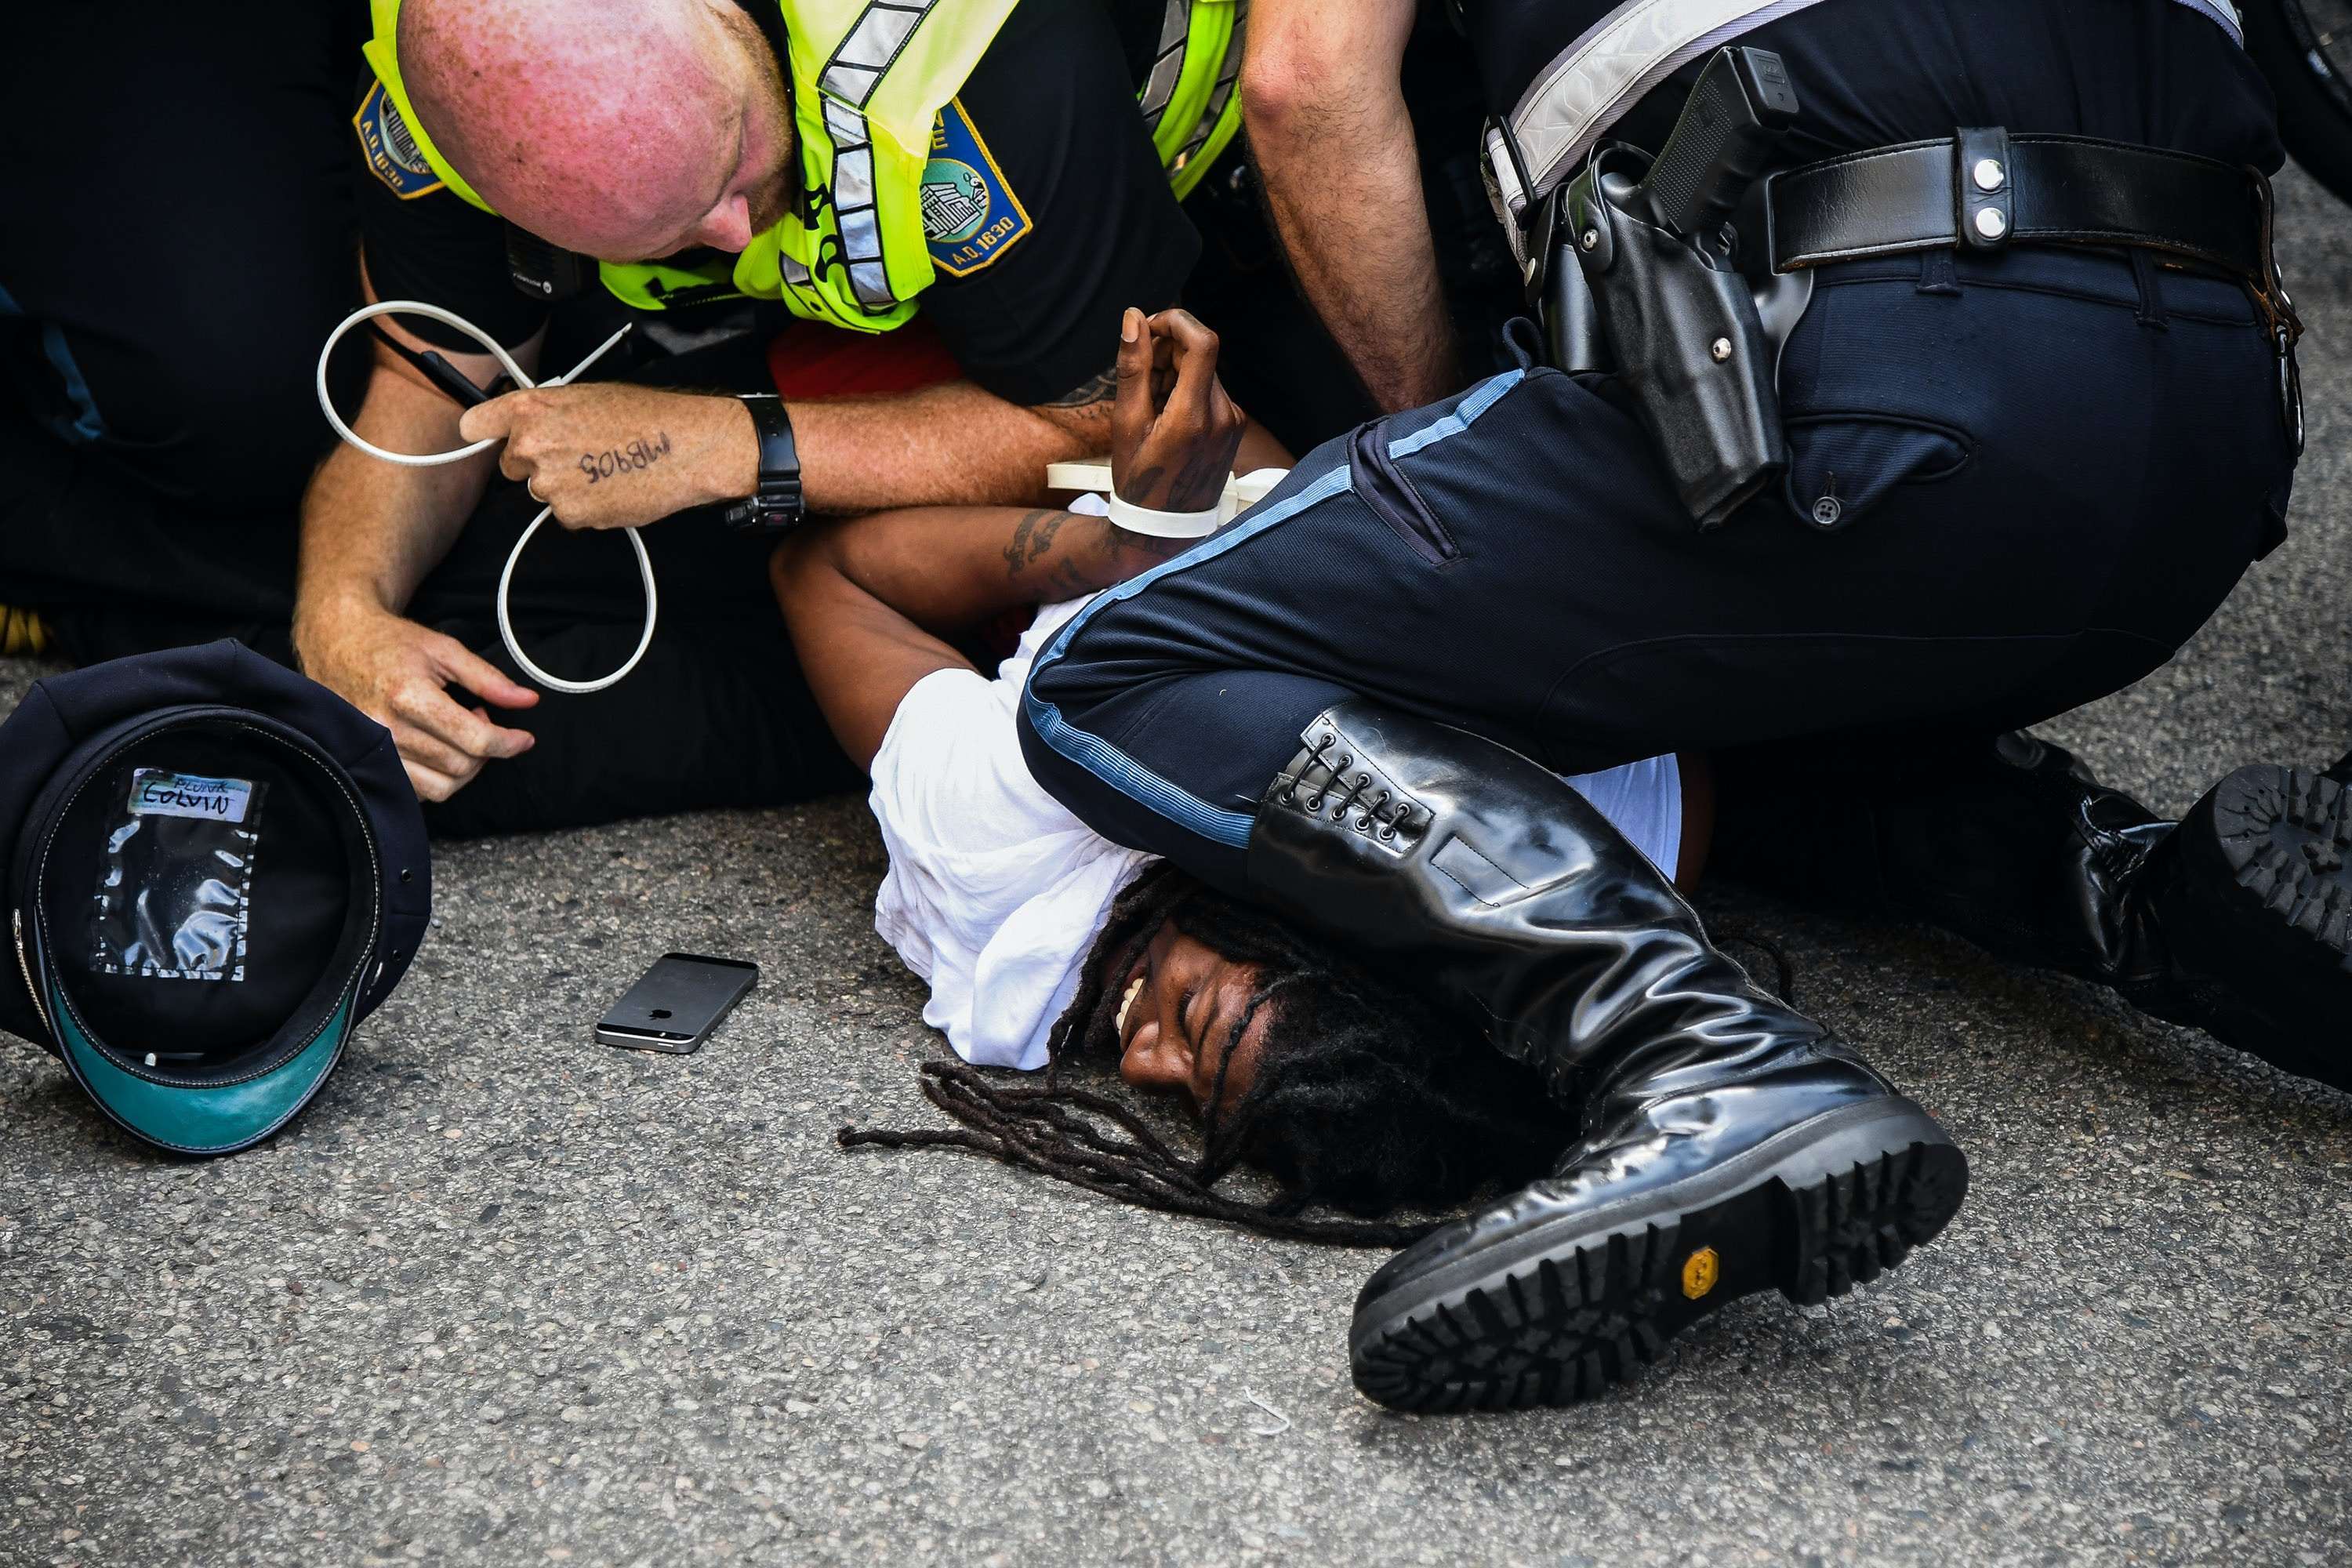 BOSTON, MA - AUGUST 19: A man gets arrested by police as hundreds of counter protesters try to block Free Speech protesters from leaving the Boston Common after the rally on Saturday, August 19, 2017, in Boston, MA. (Photo by Salwan Georges/The Washington Post via Getty Images)